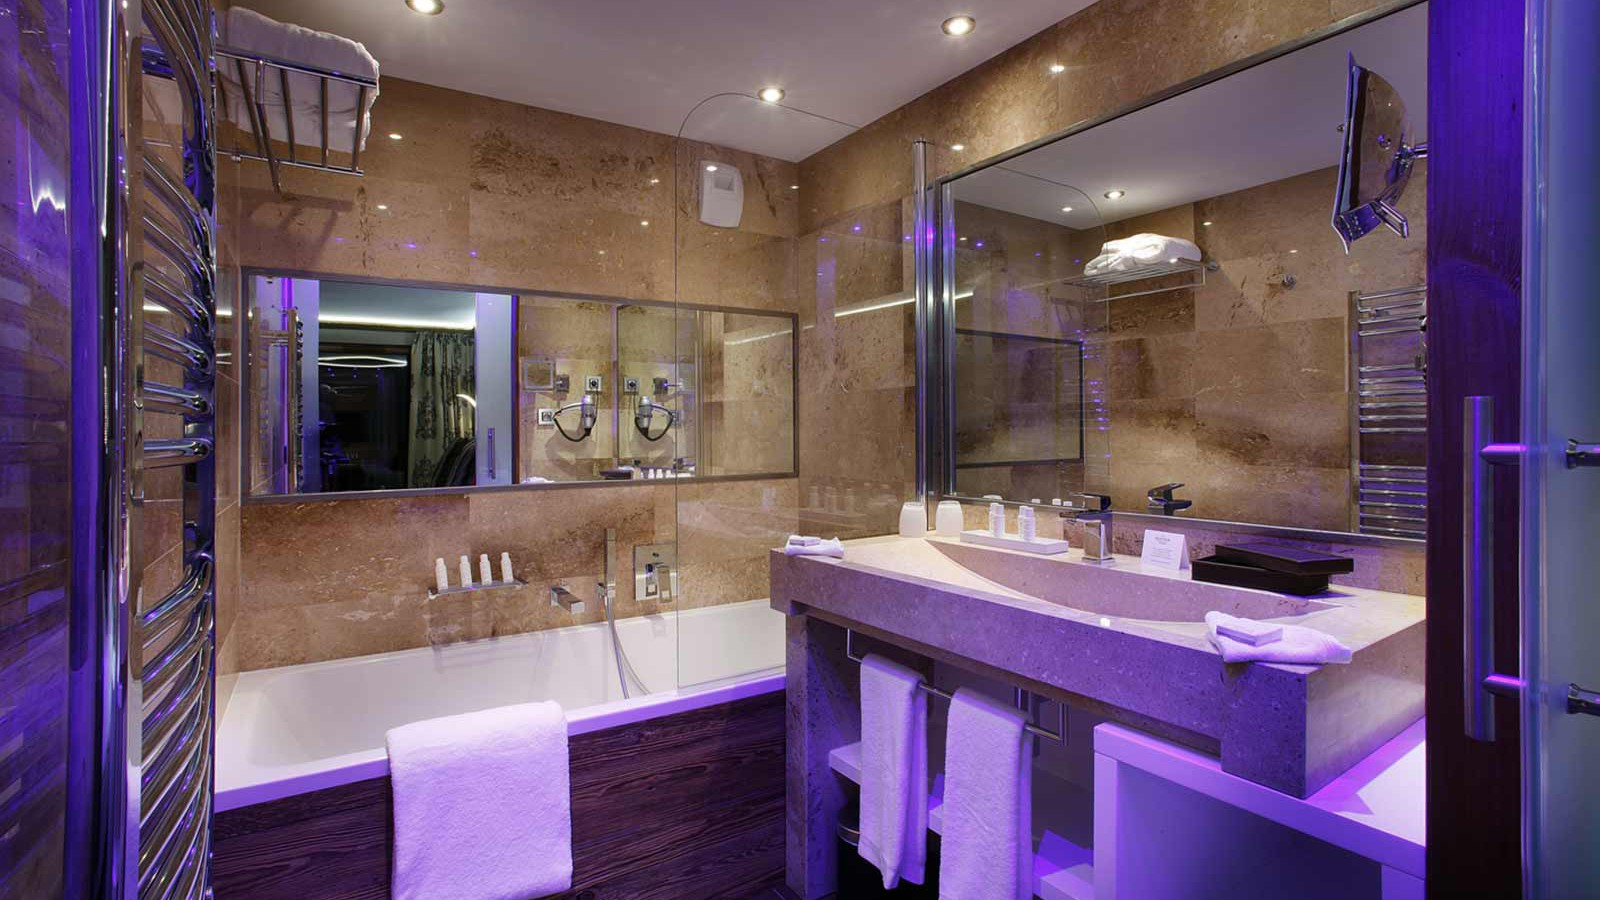 Hotel Koh-I Nor, Val Thorens - Duo room 26m2 bathroom